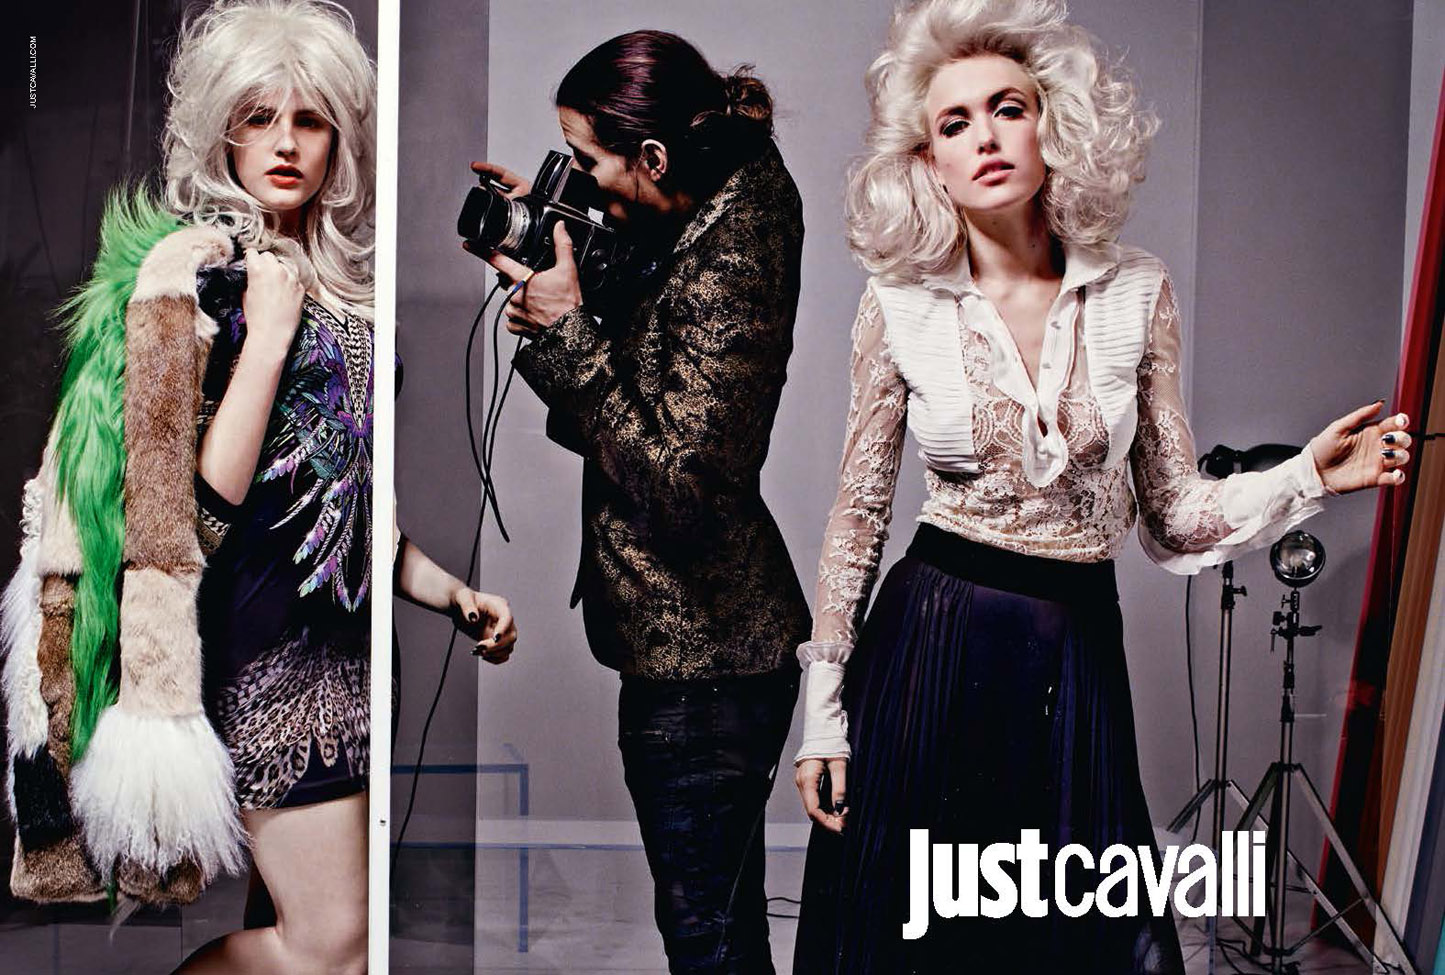 Just Cavalli ADV_FW15_Michel Comte (6)